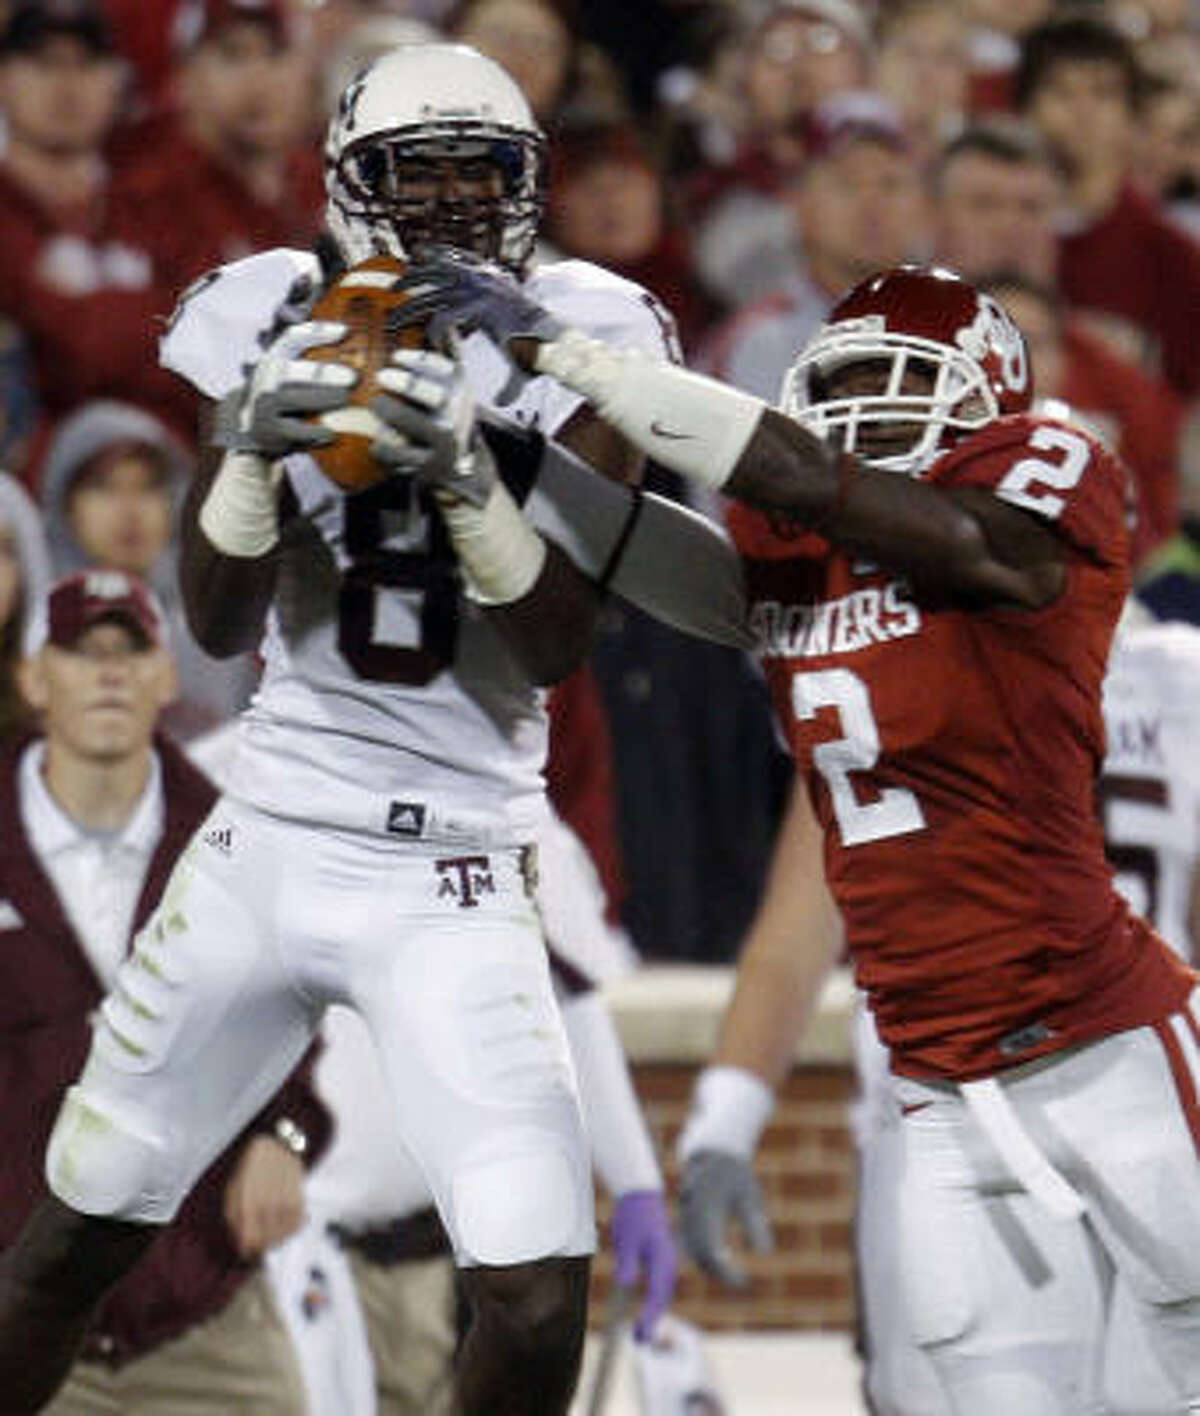 Texas A&M wide receiver Jeff Fuller, left, catches a pass in front of Oklahoma defender Brian Jackson, right, in the second quarter.